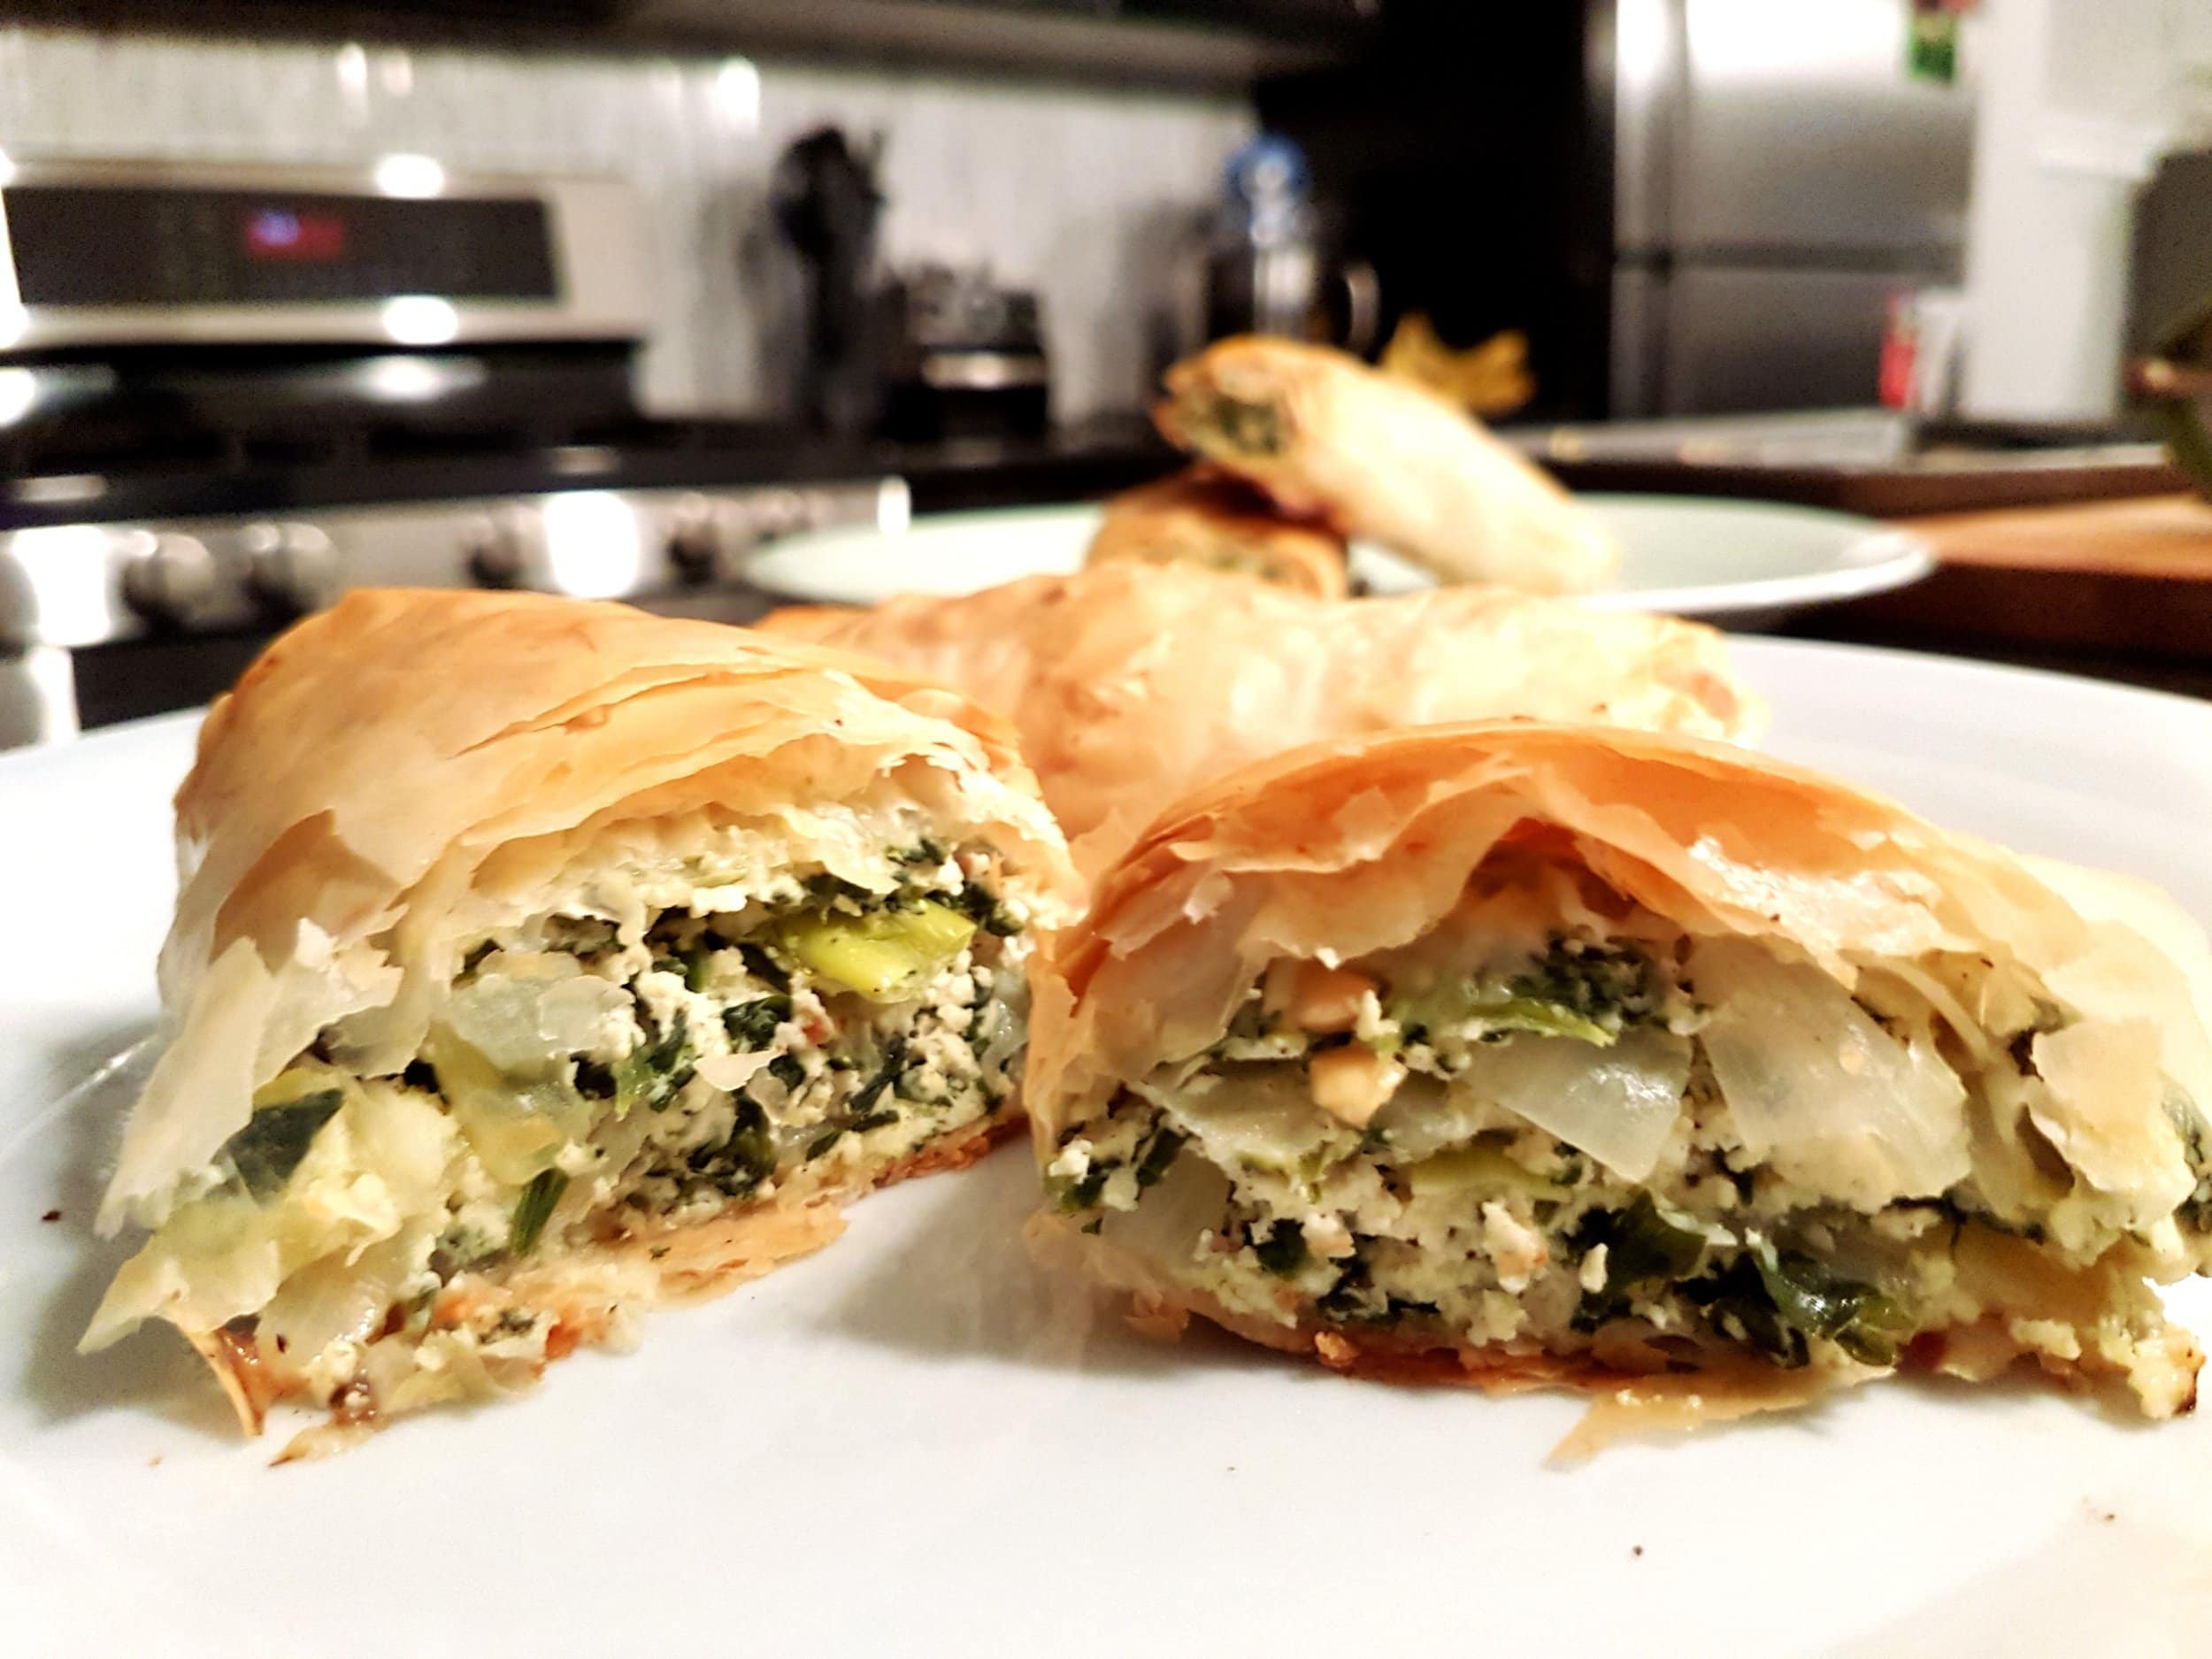 A spanakopita roll cut in half.